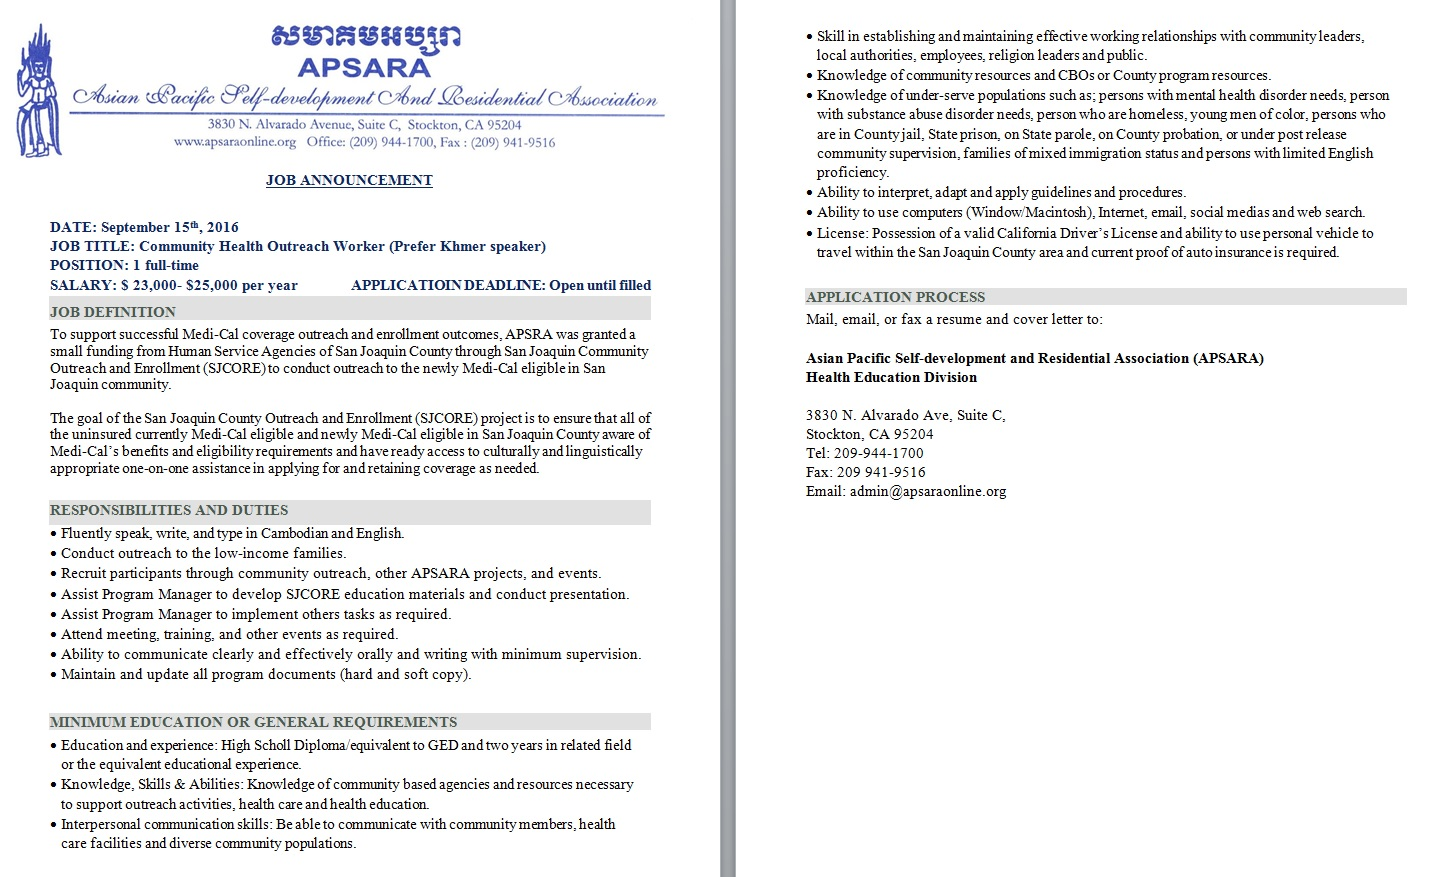 Sample Proposal Chatlos Cover Letter For Community Outreach Leading Professional